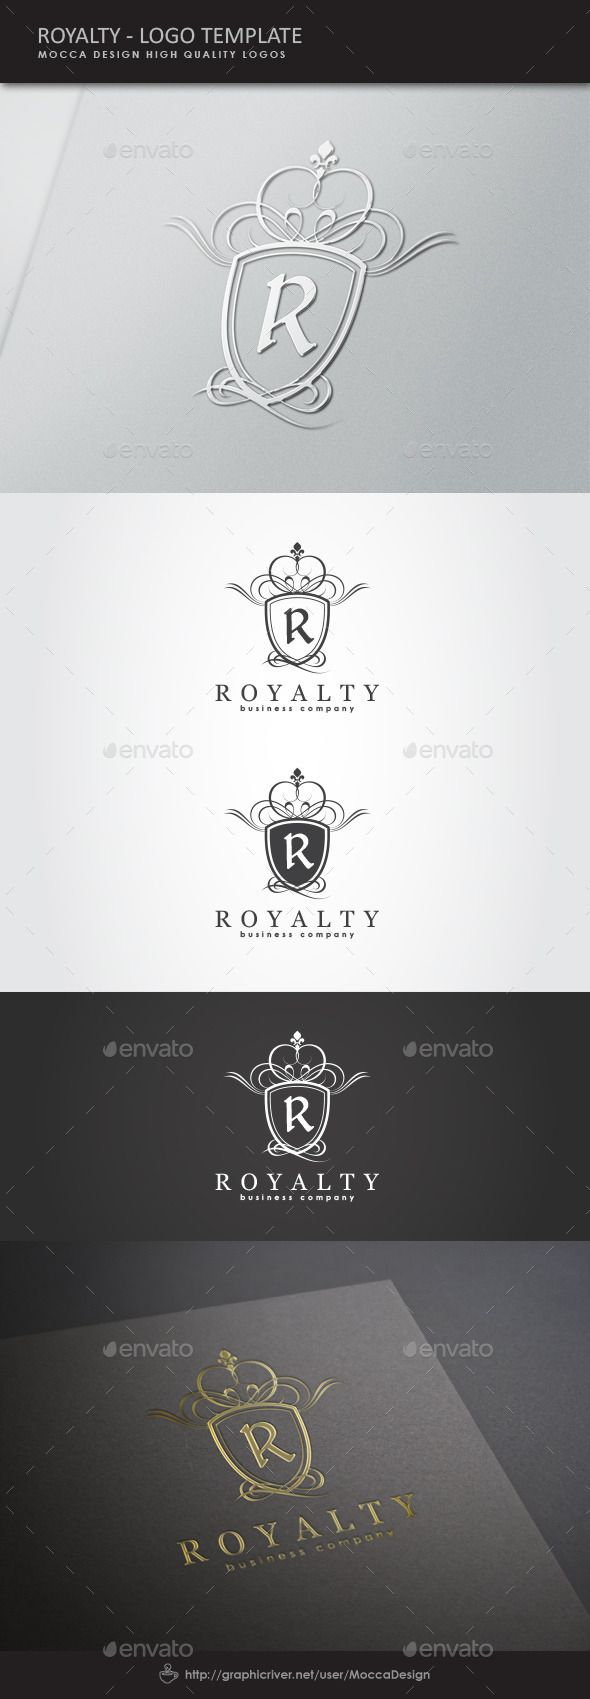 Royalty Logo Template Crests Logo Template Vector EPS, Vector AI. Download here: http://graphicriver.net/item/royalty-logo/1574491?s_rank=50&ref=yinkira